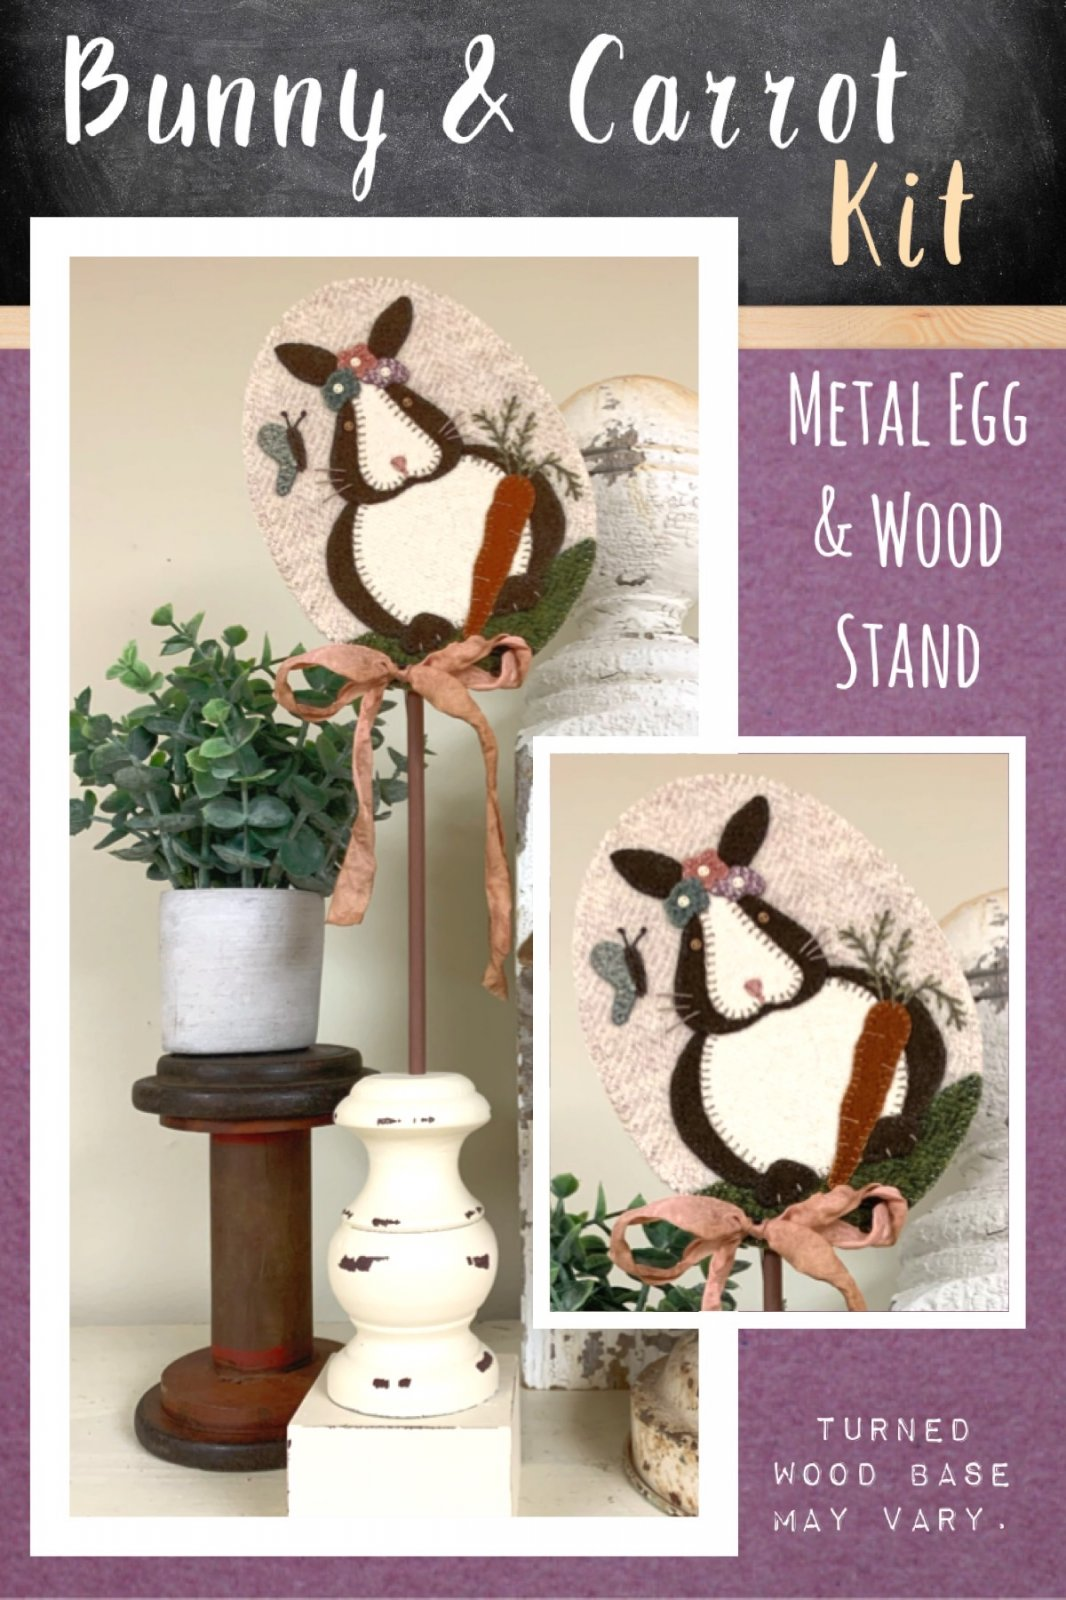 Bunny & Carrot * Kit, Pattern, Metal Egg & Wood Stand